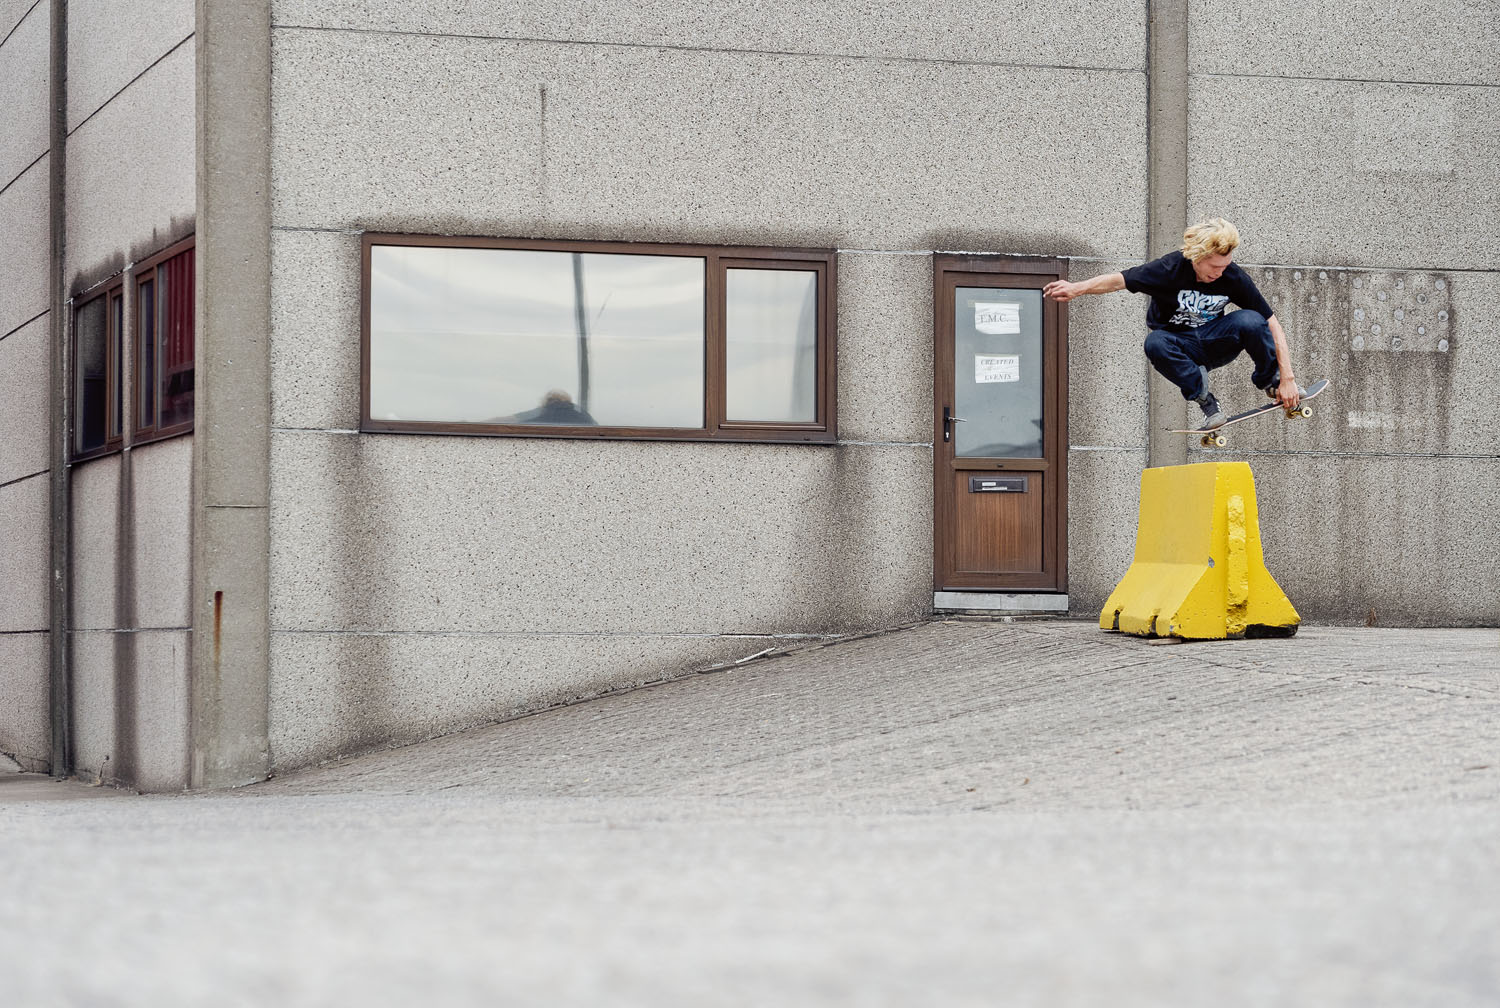 Samu_Karvonen_Switch_Wallie_Mute_Antwerp_Grab_NotSharpened_AdobeRGB_3131 DVL